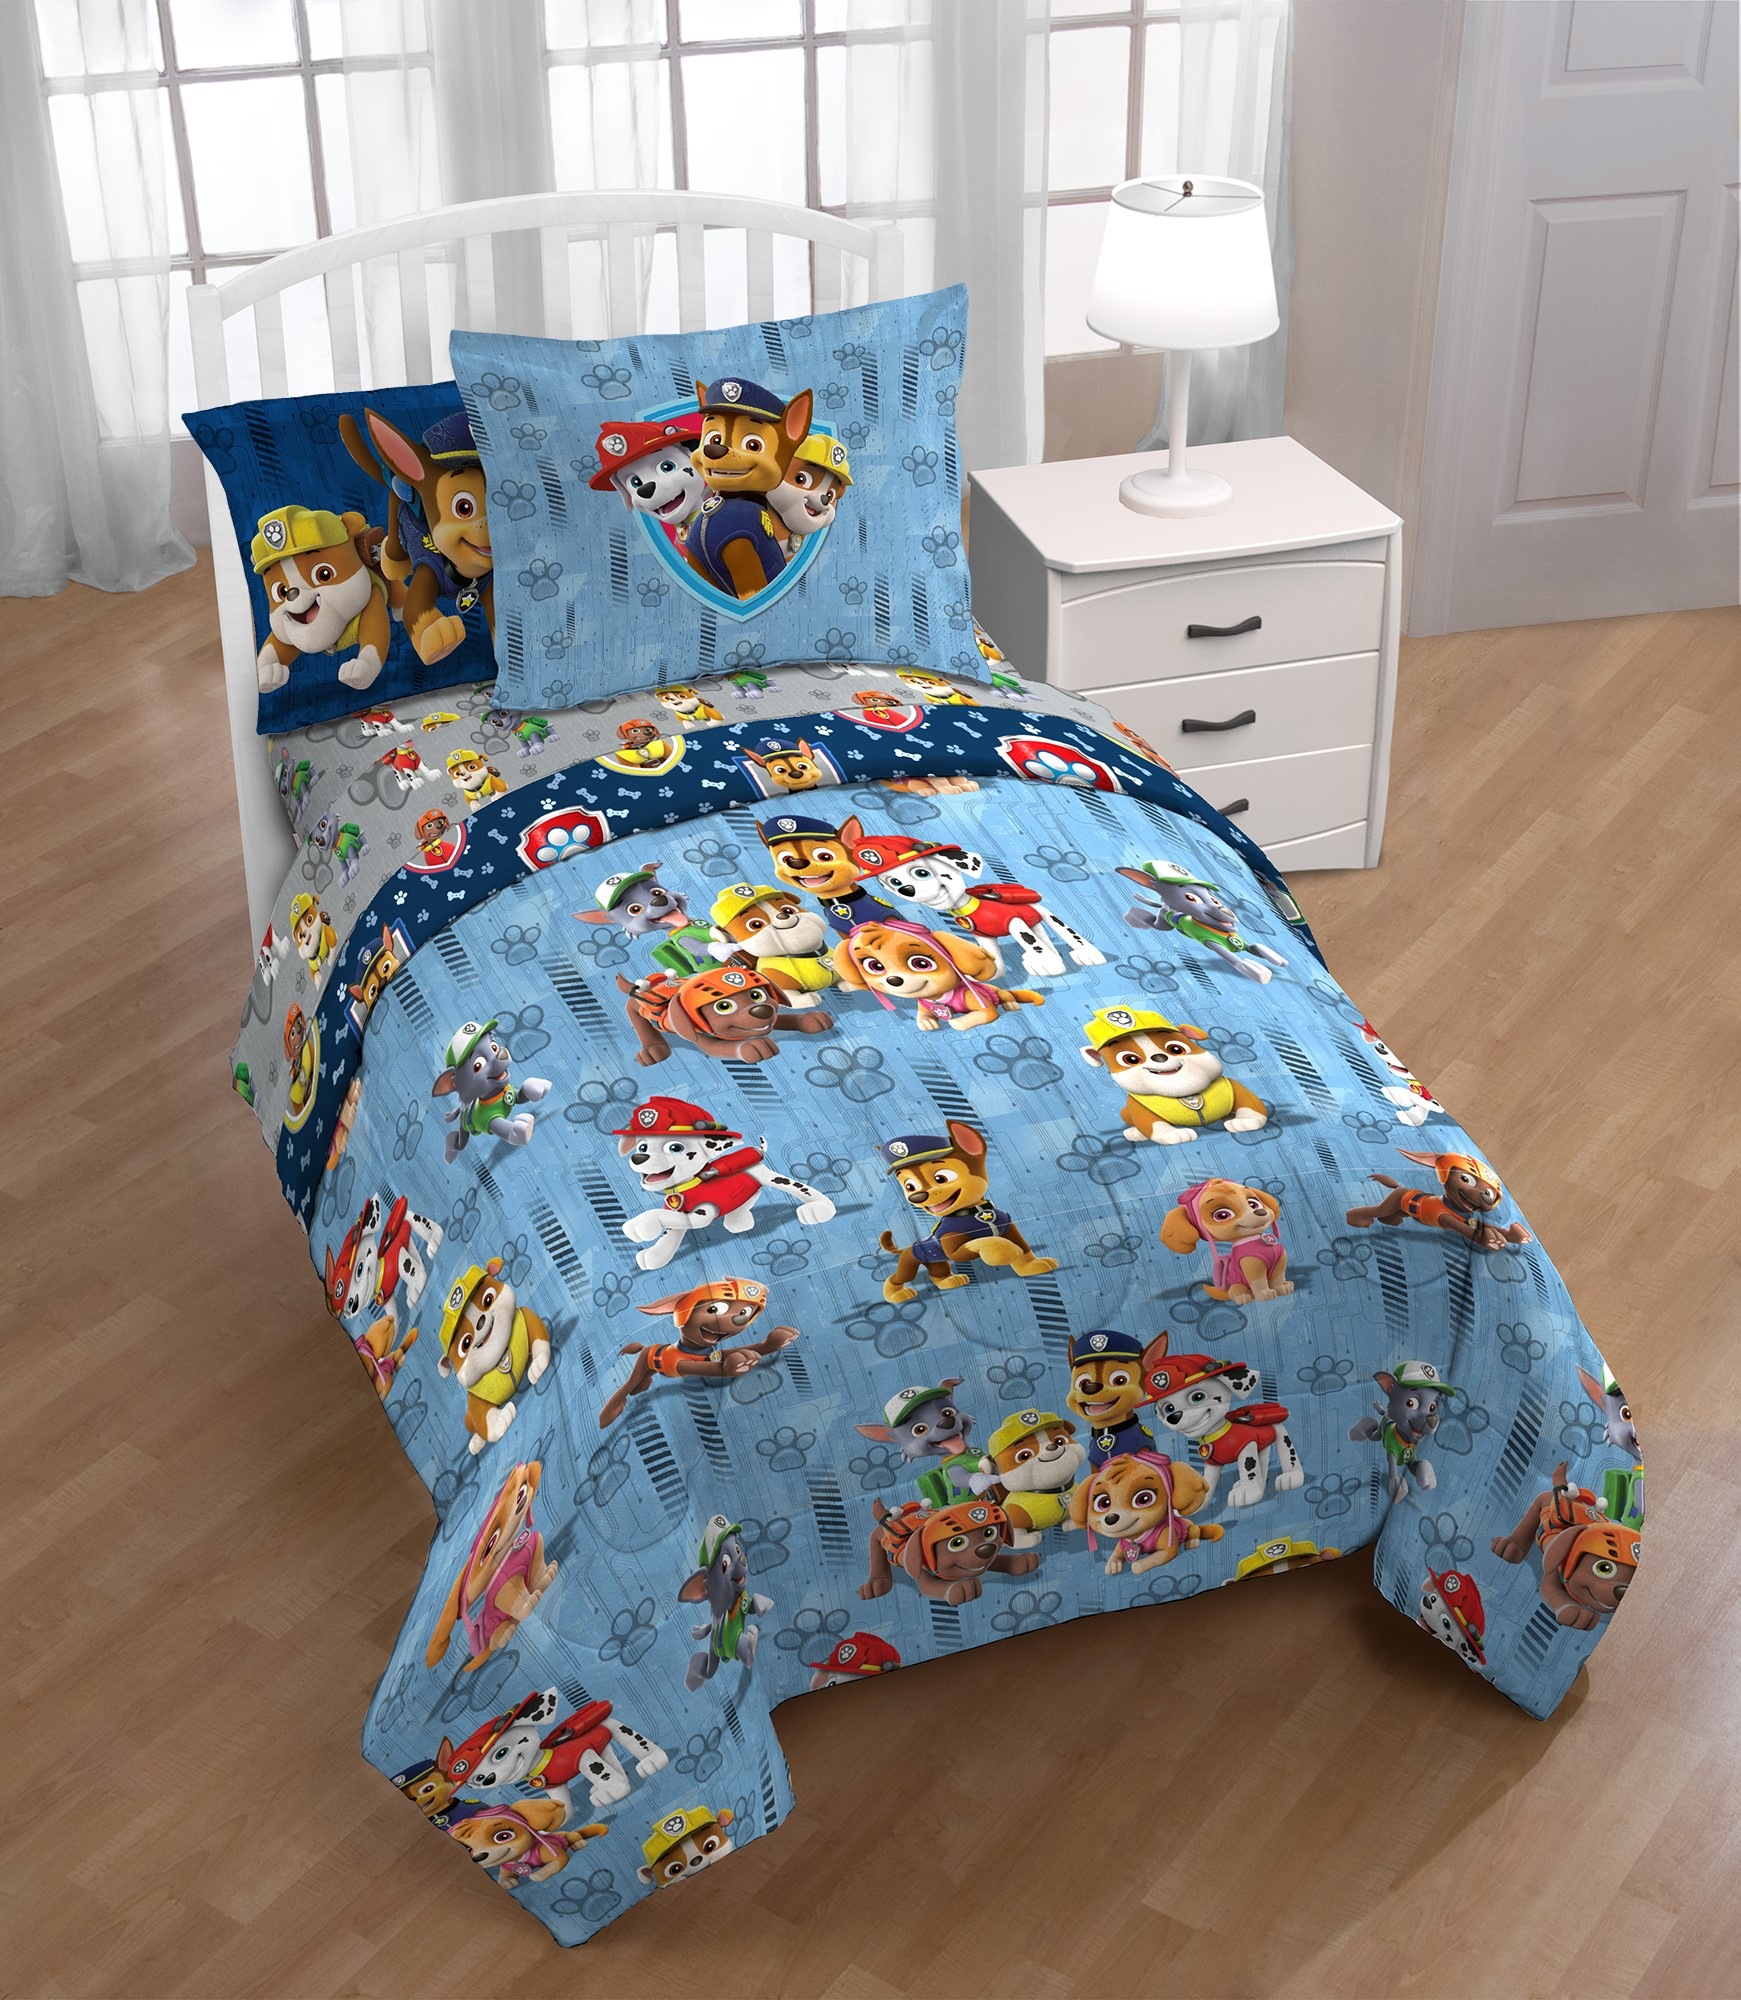 Paw Patrol Boy 'Walking the Dogs' Twin Bed in a Bag Bedding Set with Bonus Tote �... by Franco Manufacturing